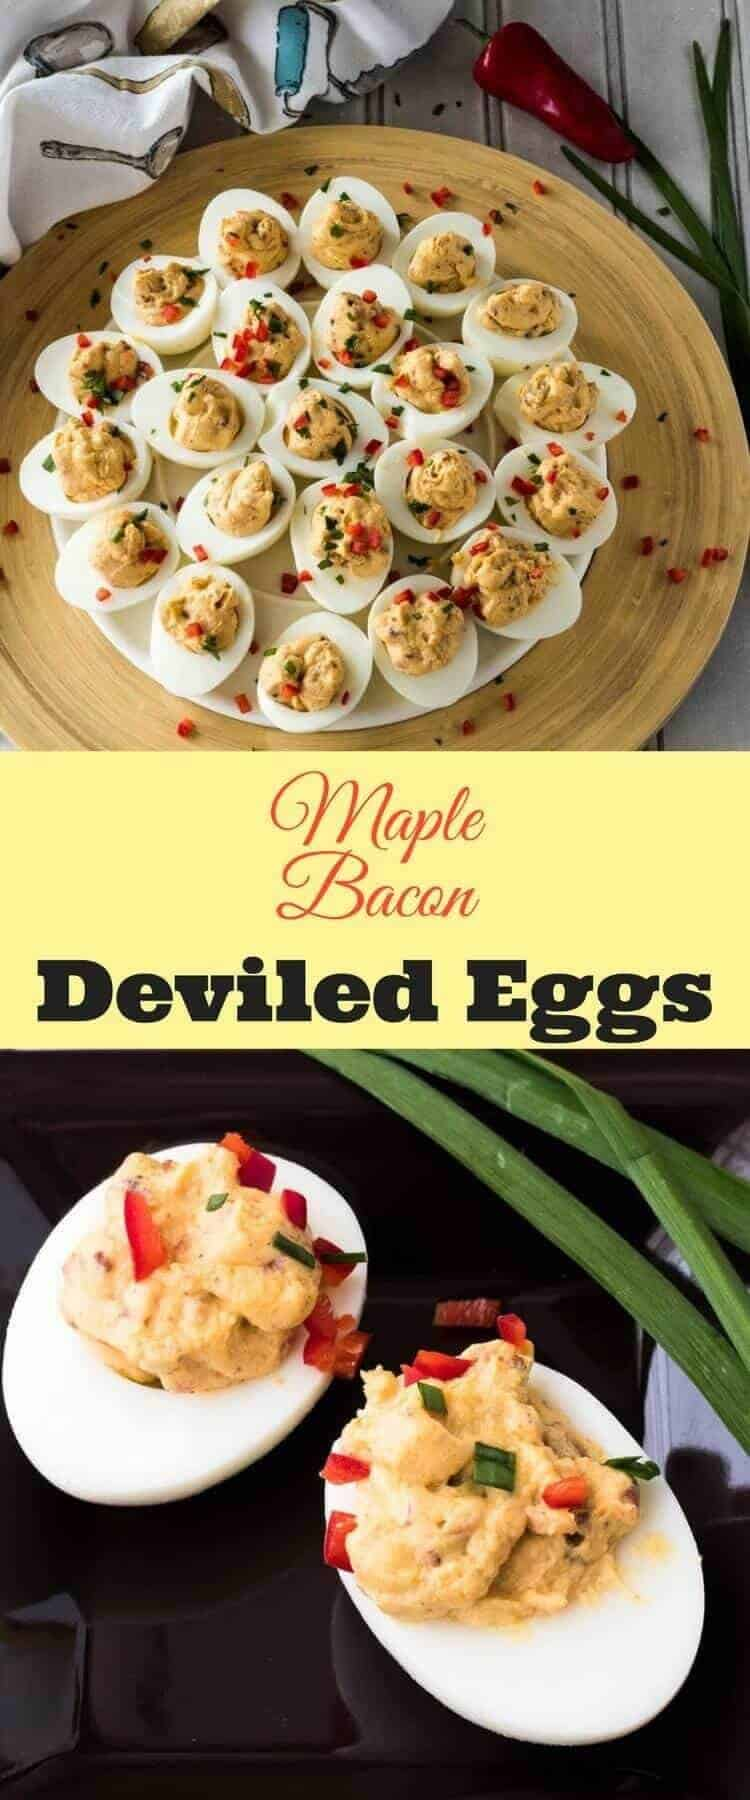 Maple Bacon Deviled Eggs - creamy, sweet, spicy, smoky... A twist on a beloved classic! deviled egg recipes | Easter recipes | eggs